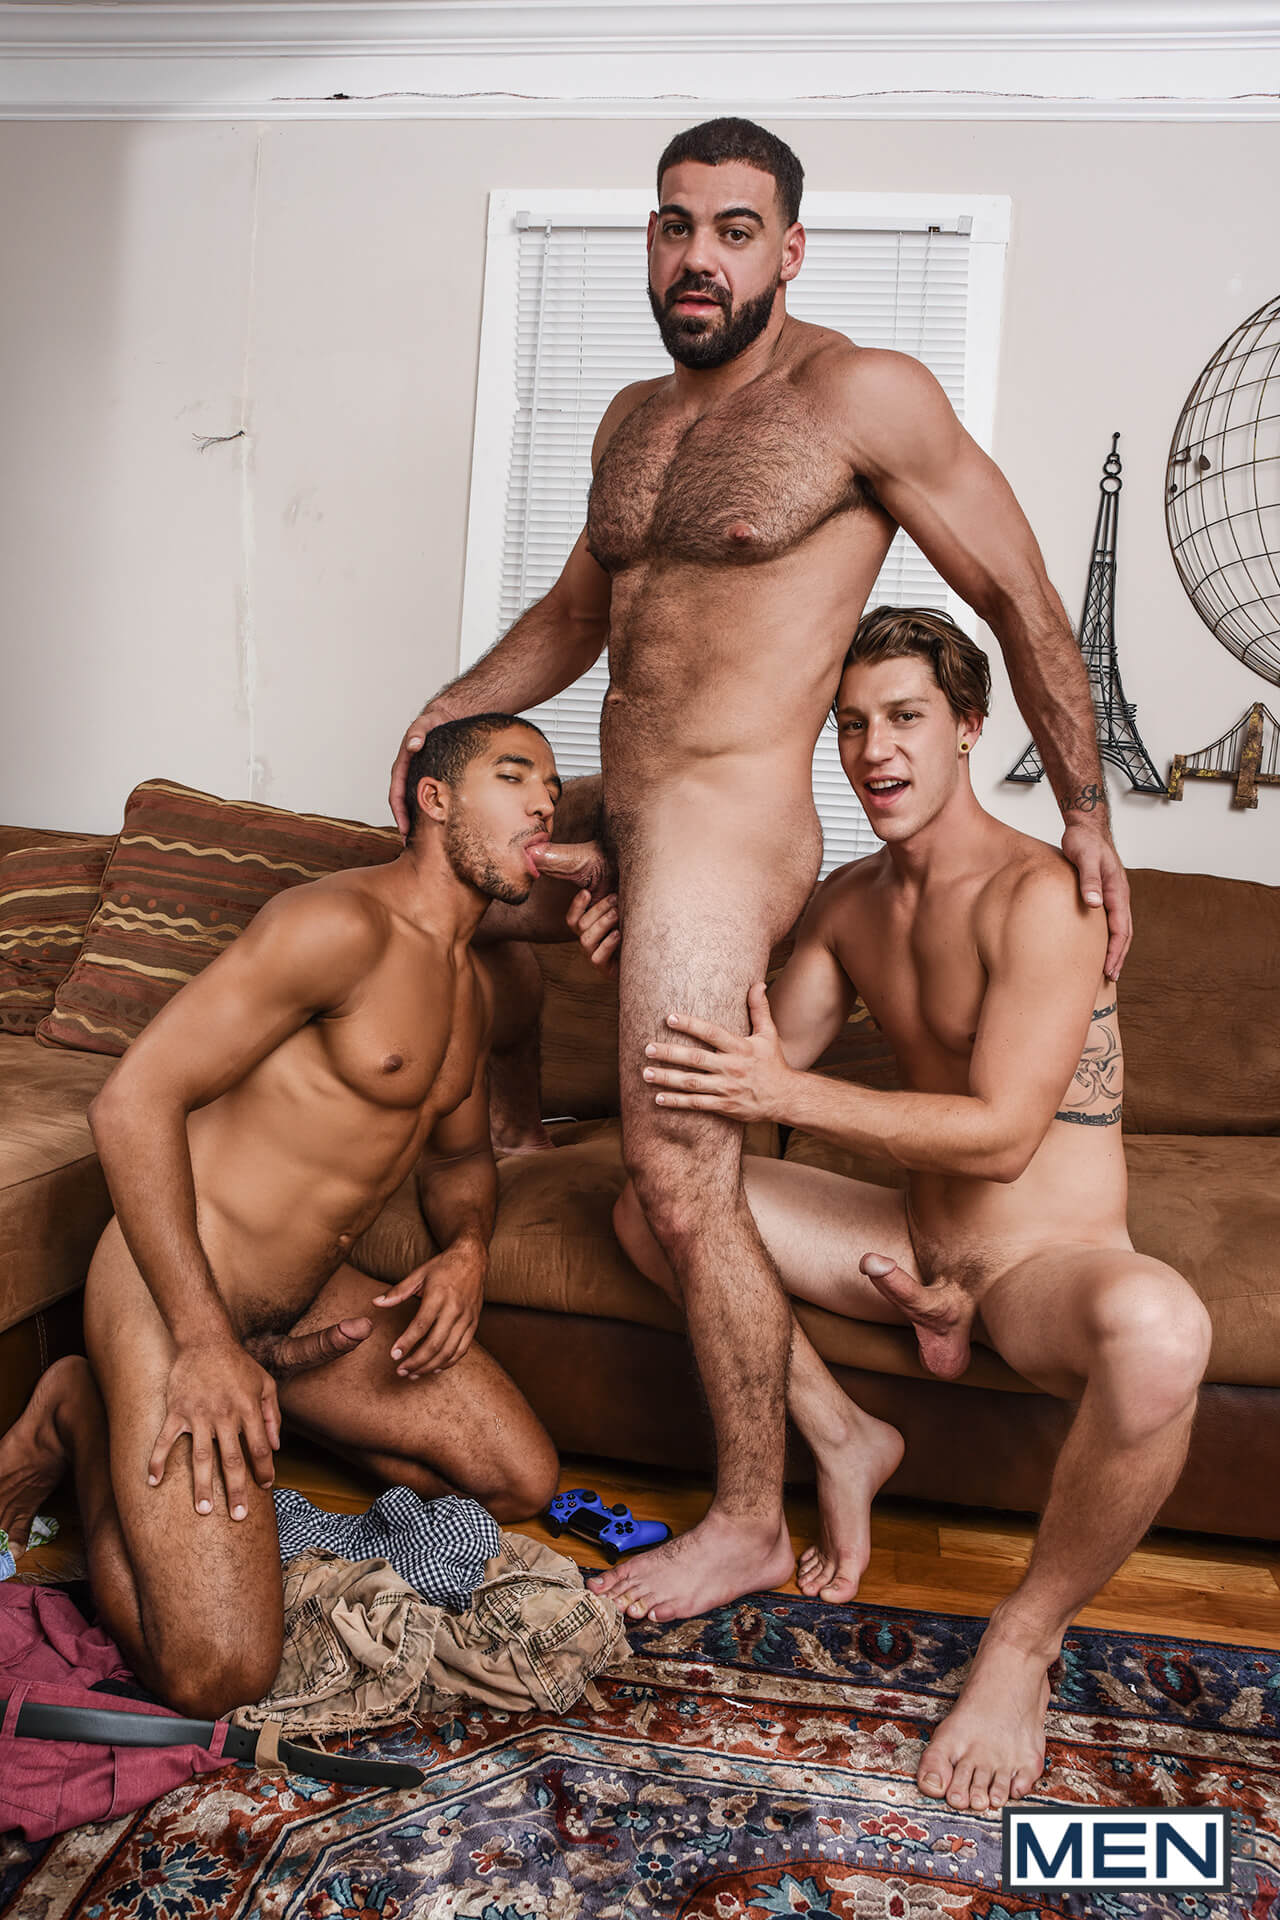 men drill my hole peepers part 1 mike maverick paul canon ricky larkin gay porn blog image 14